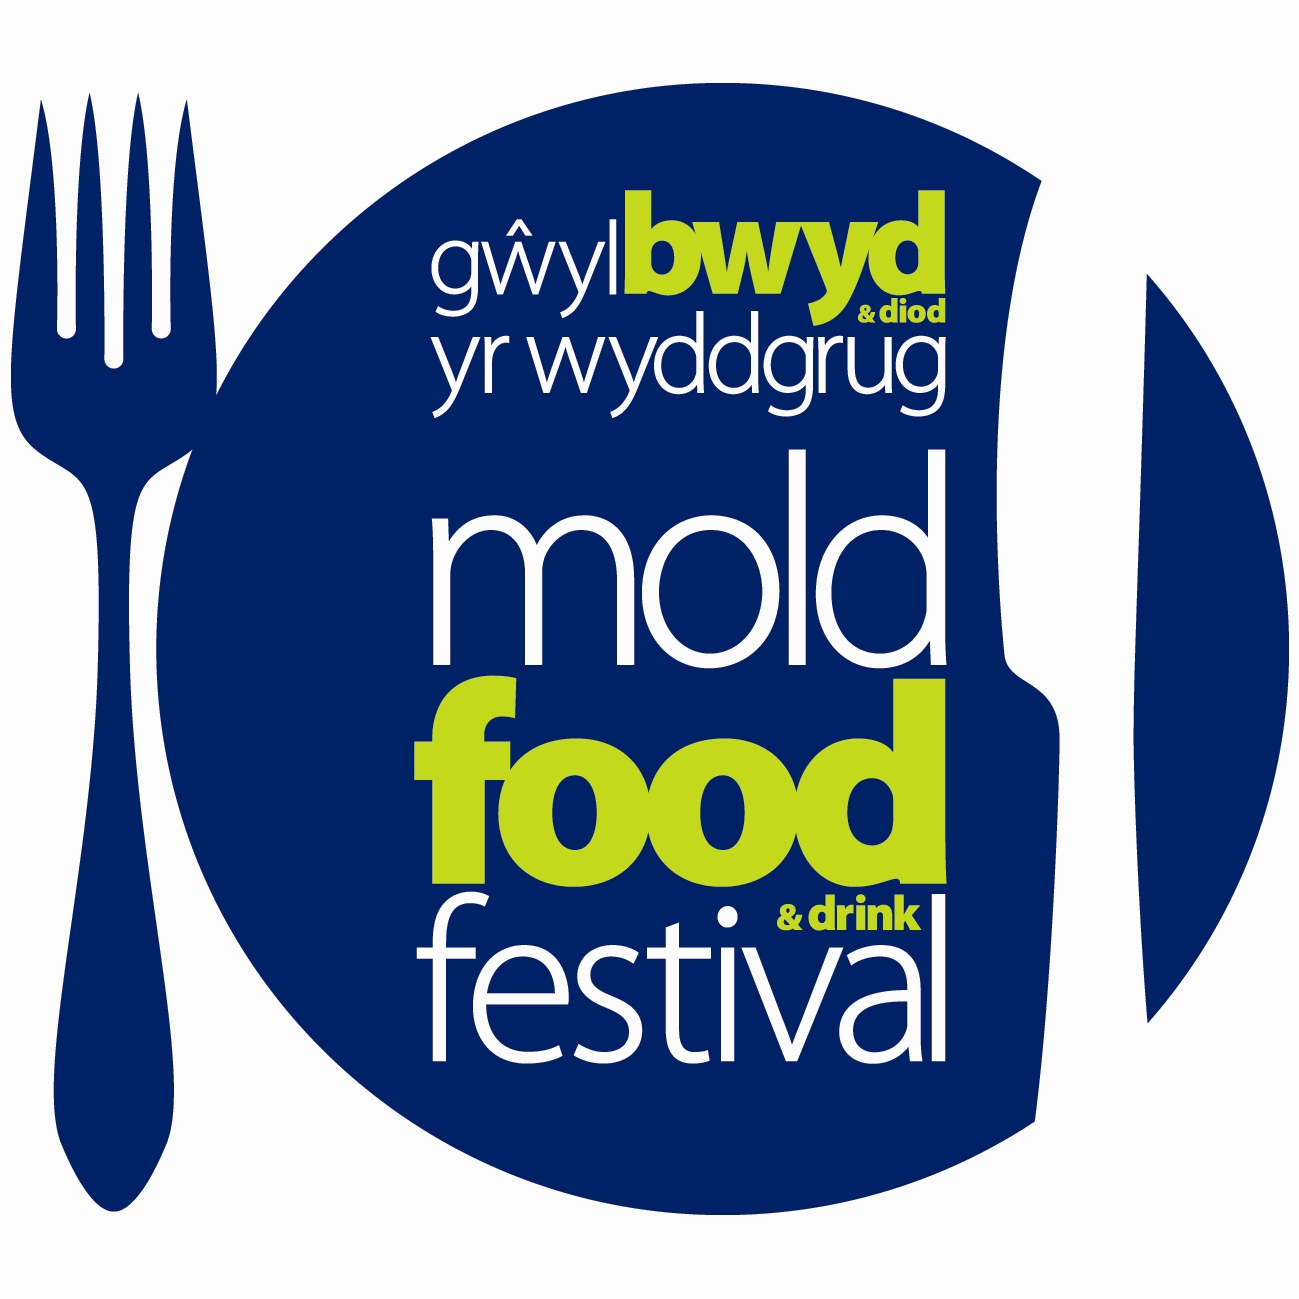 Mold Food & Drink Festival logo